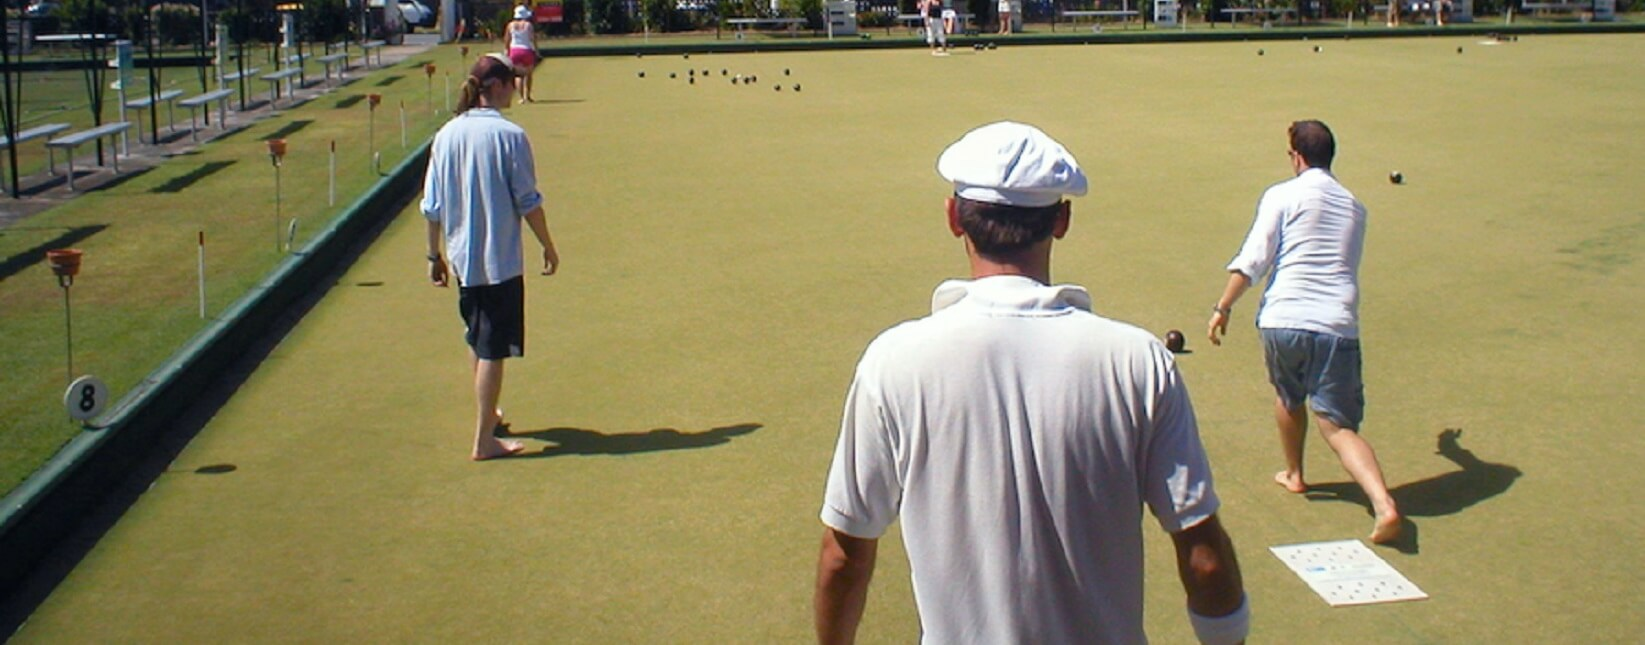 Best spots for barefoot bowls on a Sunday